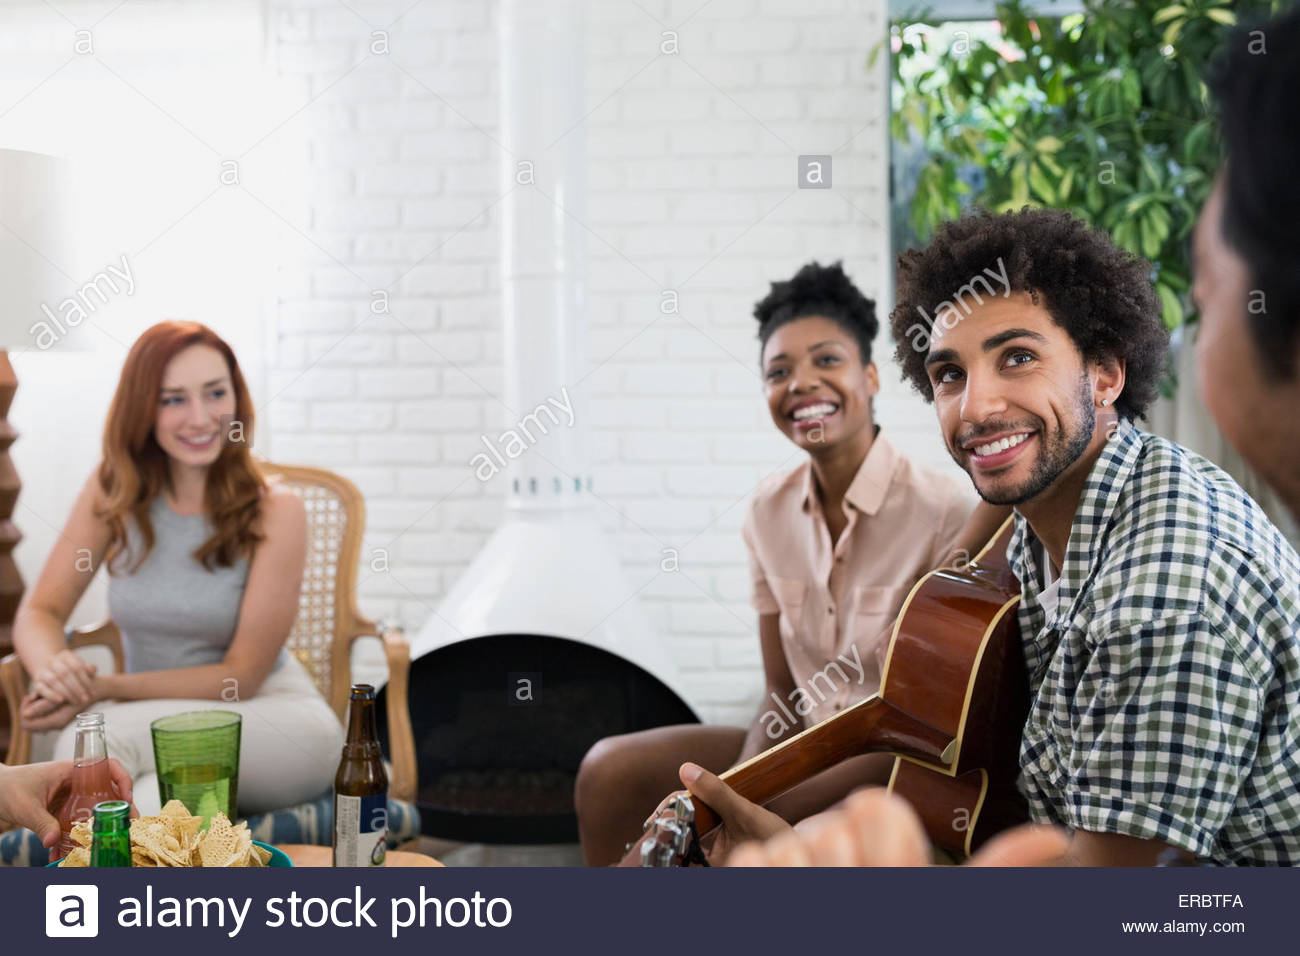 Friends hanging out playing guitar in living room Stock Photo